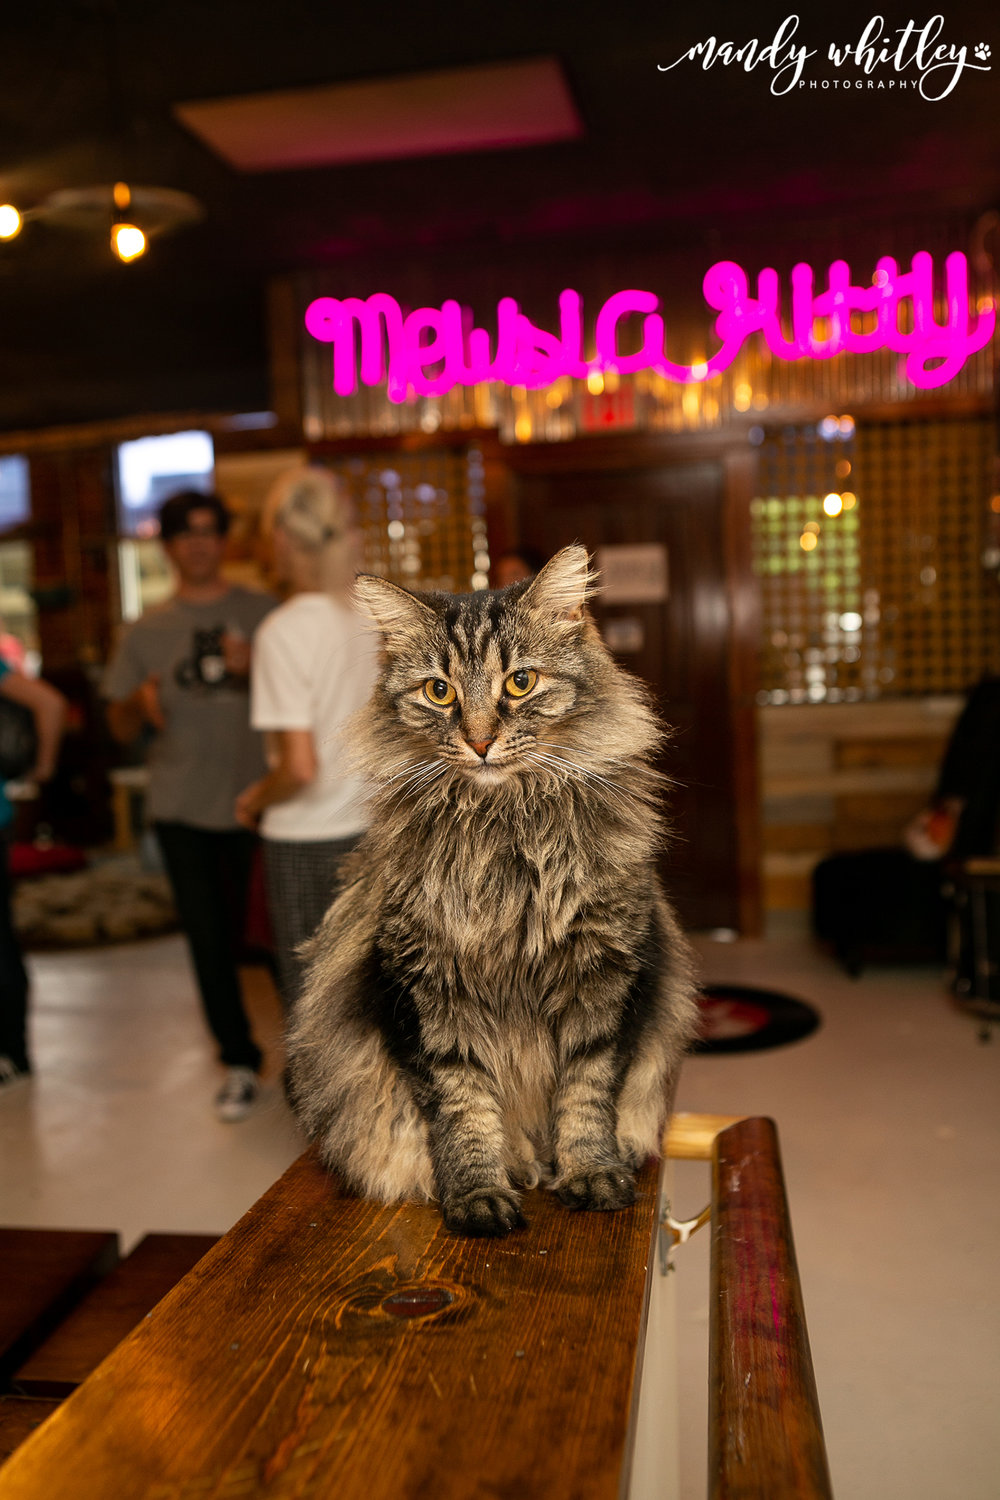 Mewsic Kitty Cafe Nashville Tennessee